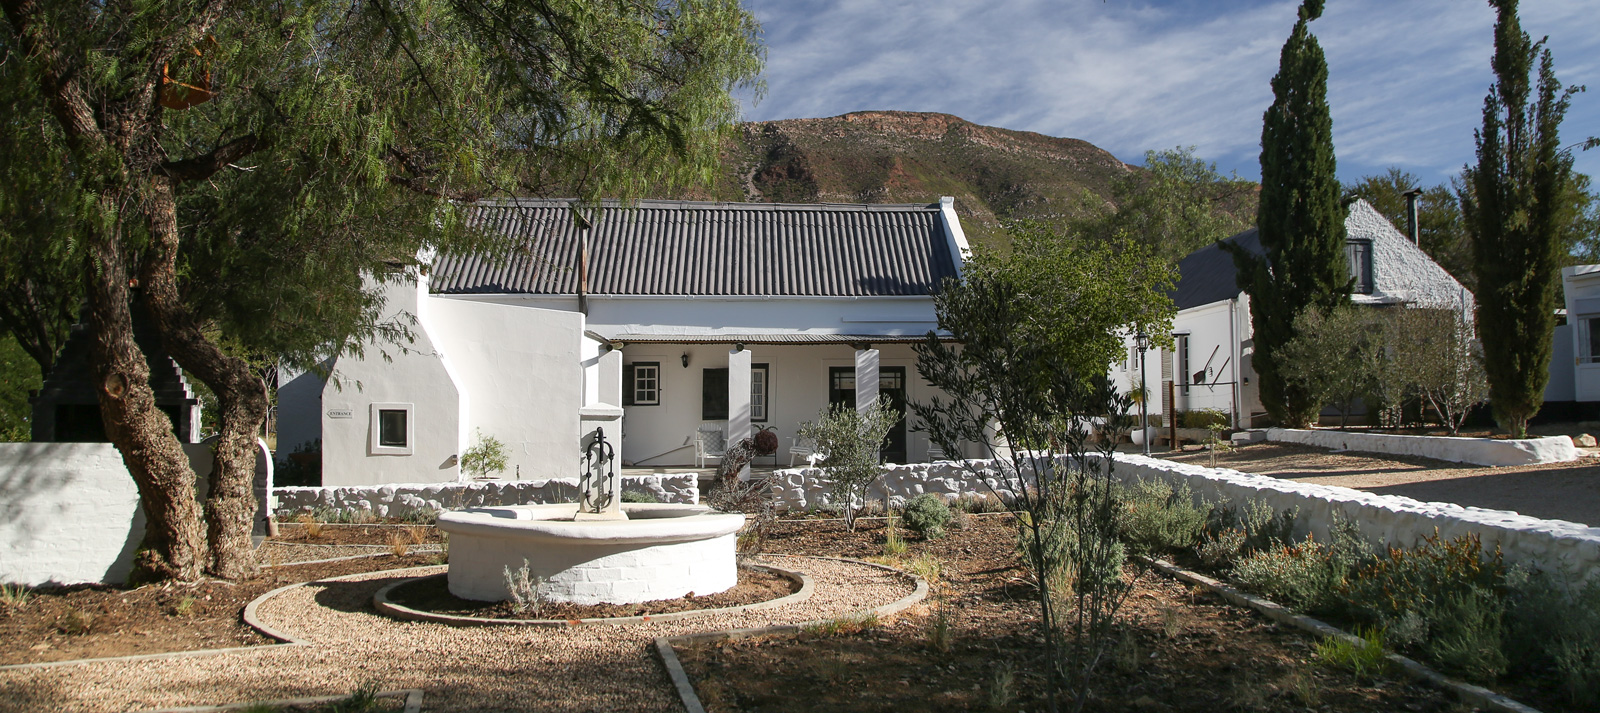 About Dennehof Karoo Guesthouse